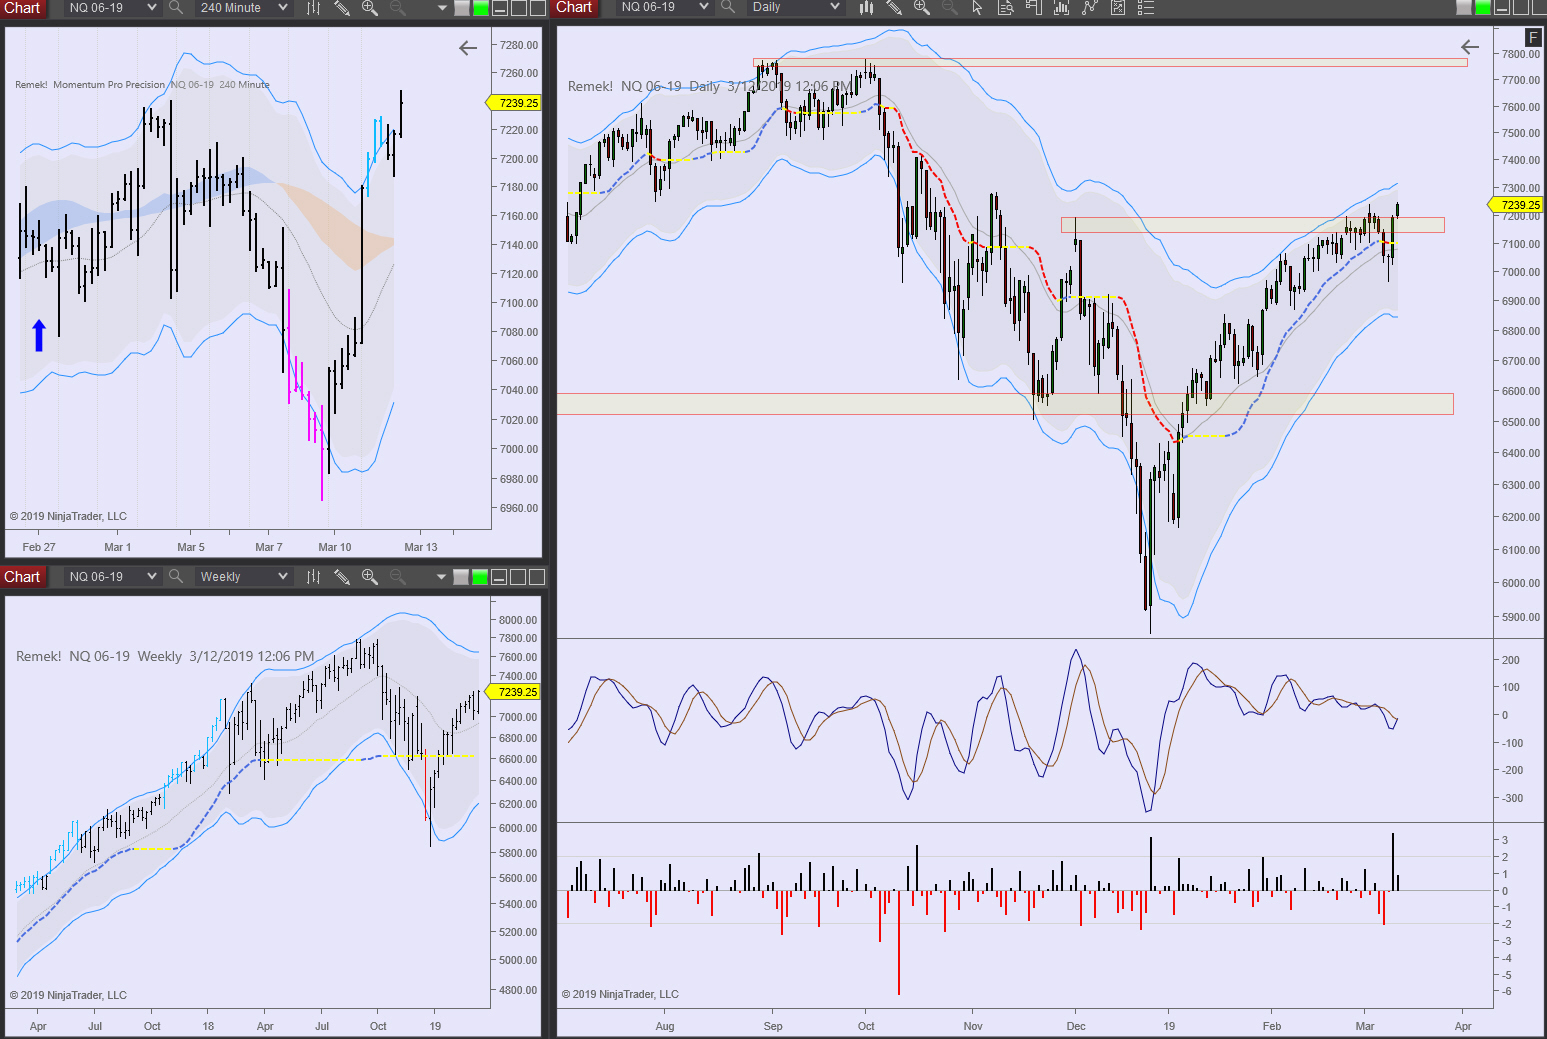 NQ 2019 03 12 - unfinished business at 7800?